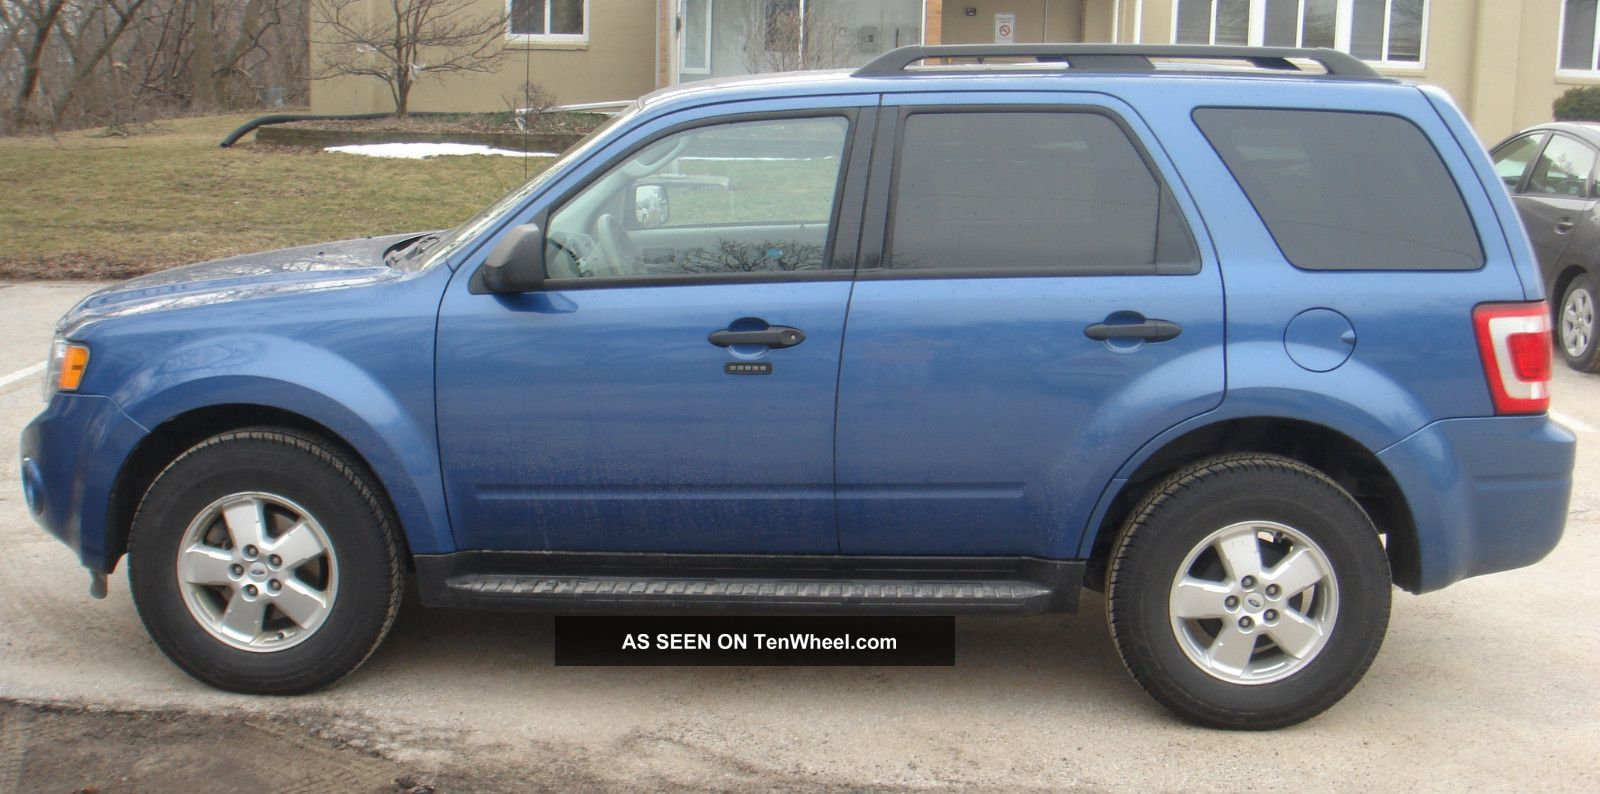 Ford Escape Xlt Auto Wd Lgw on 2013 Lincoln Navigator